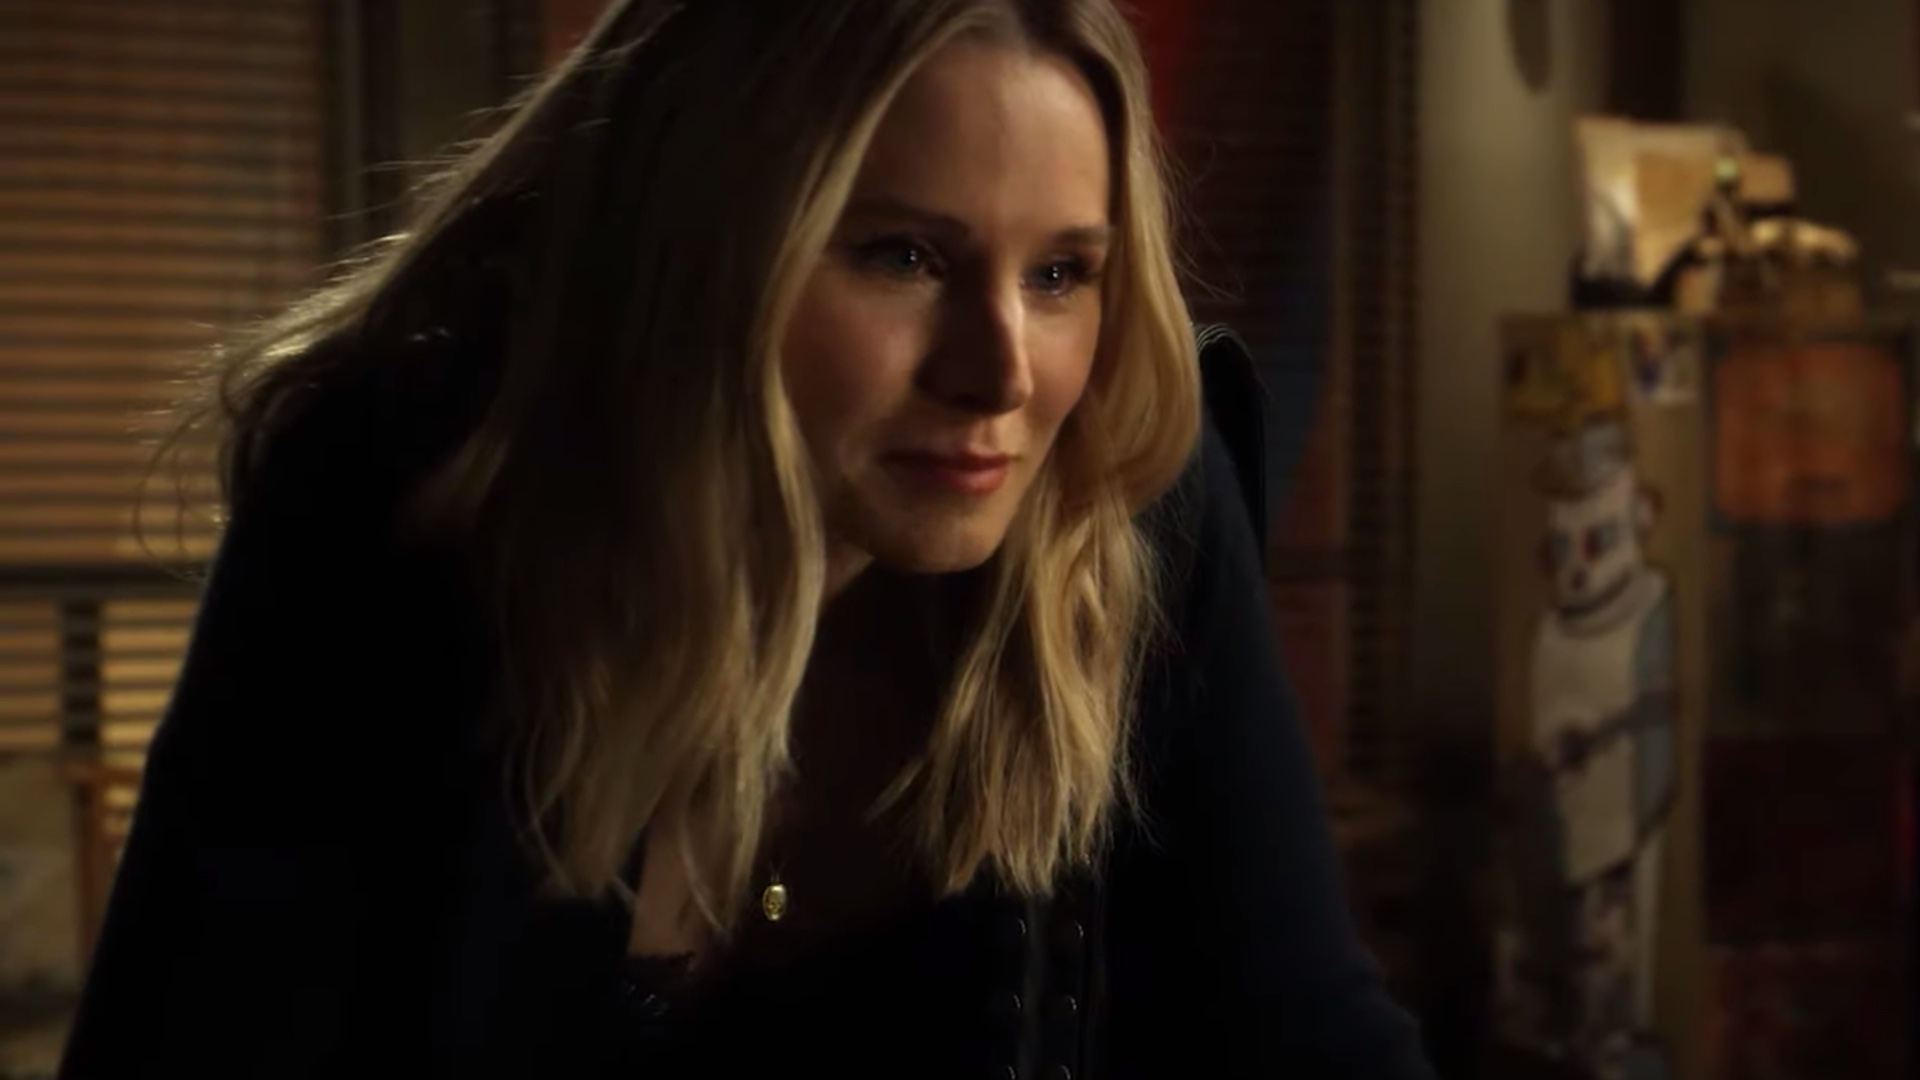 veronica-is-hunting-down-a-serial-bomber-in-new-trailer-for-veronica-mars-season-4-social.jpg